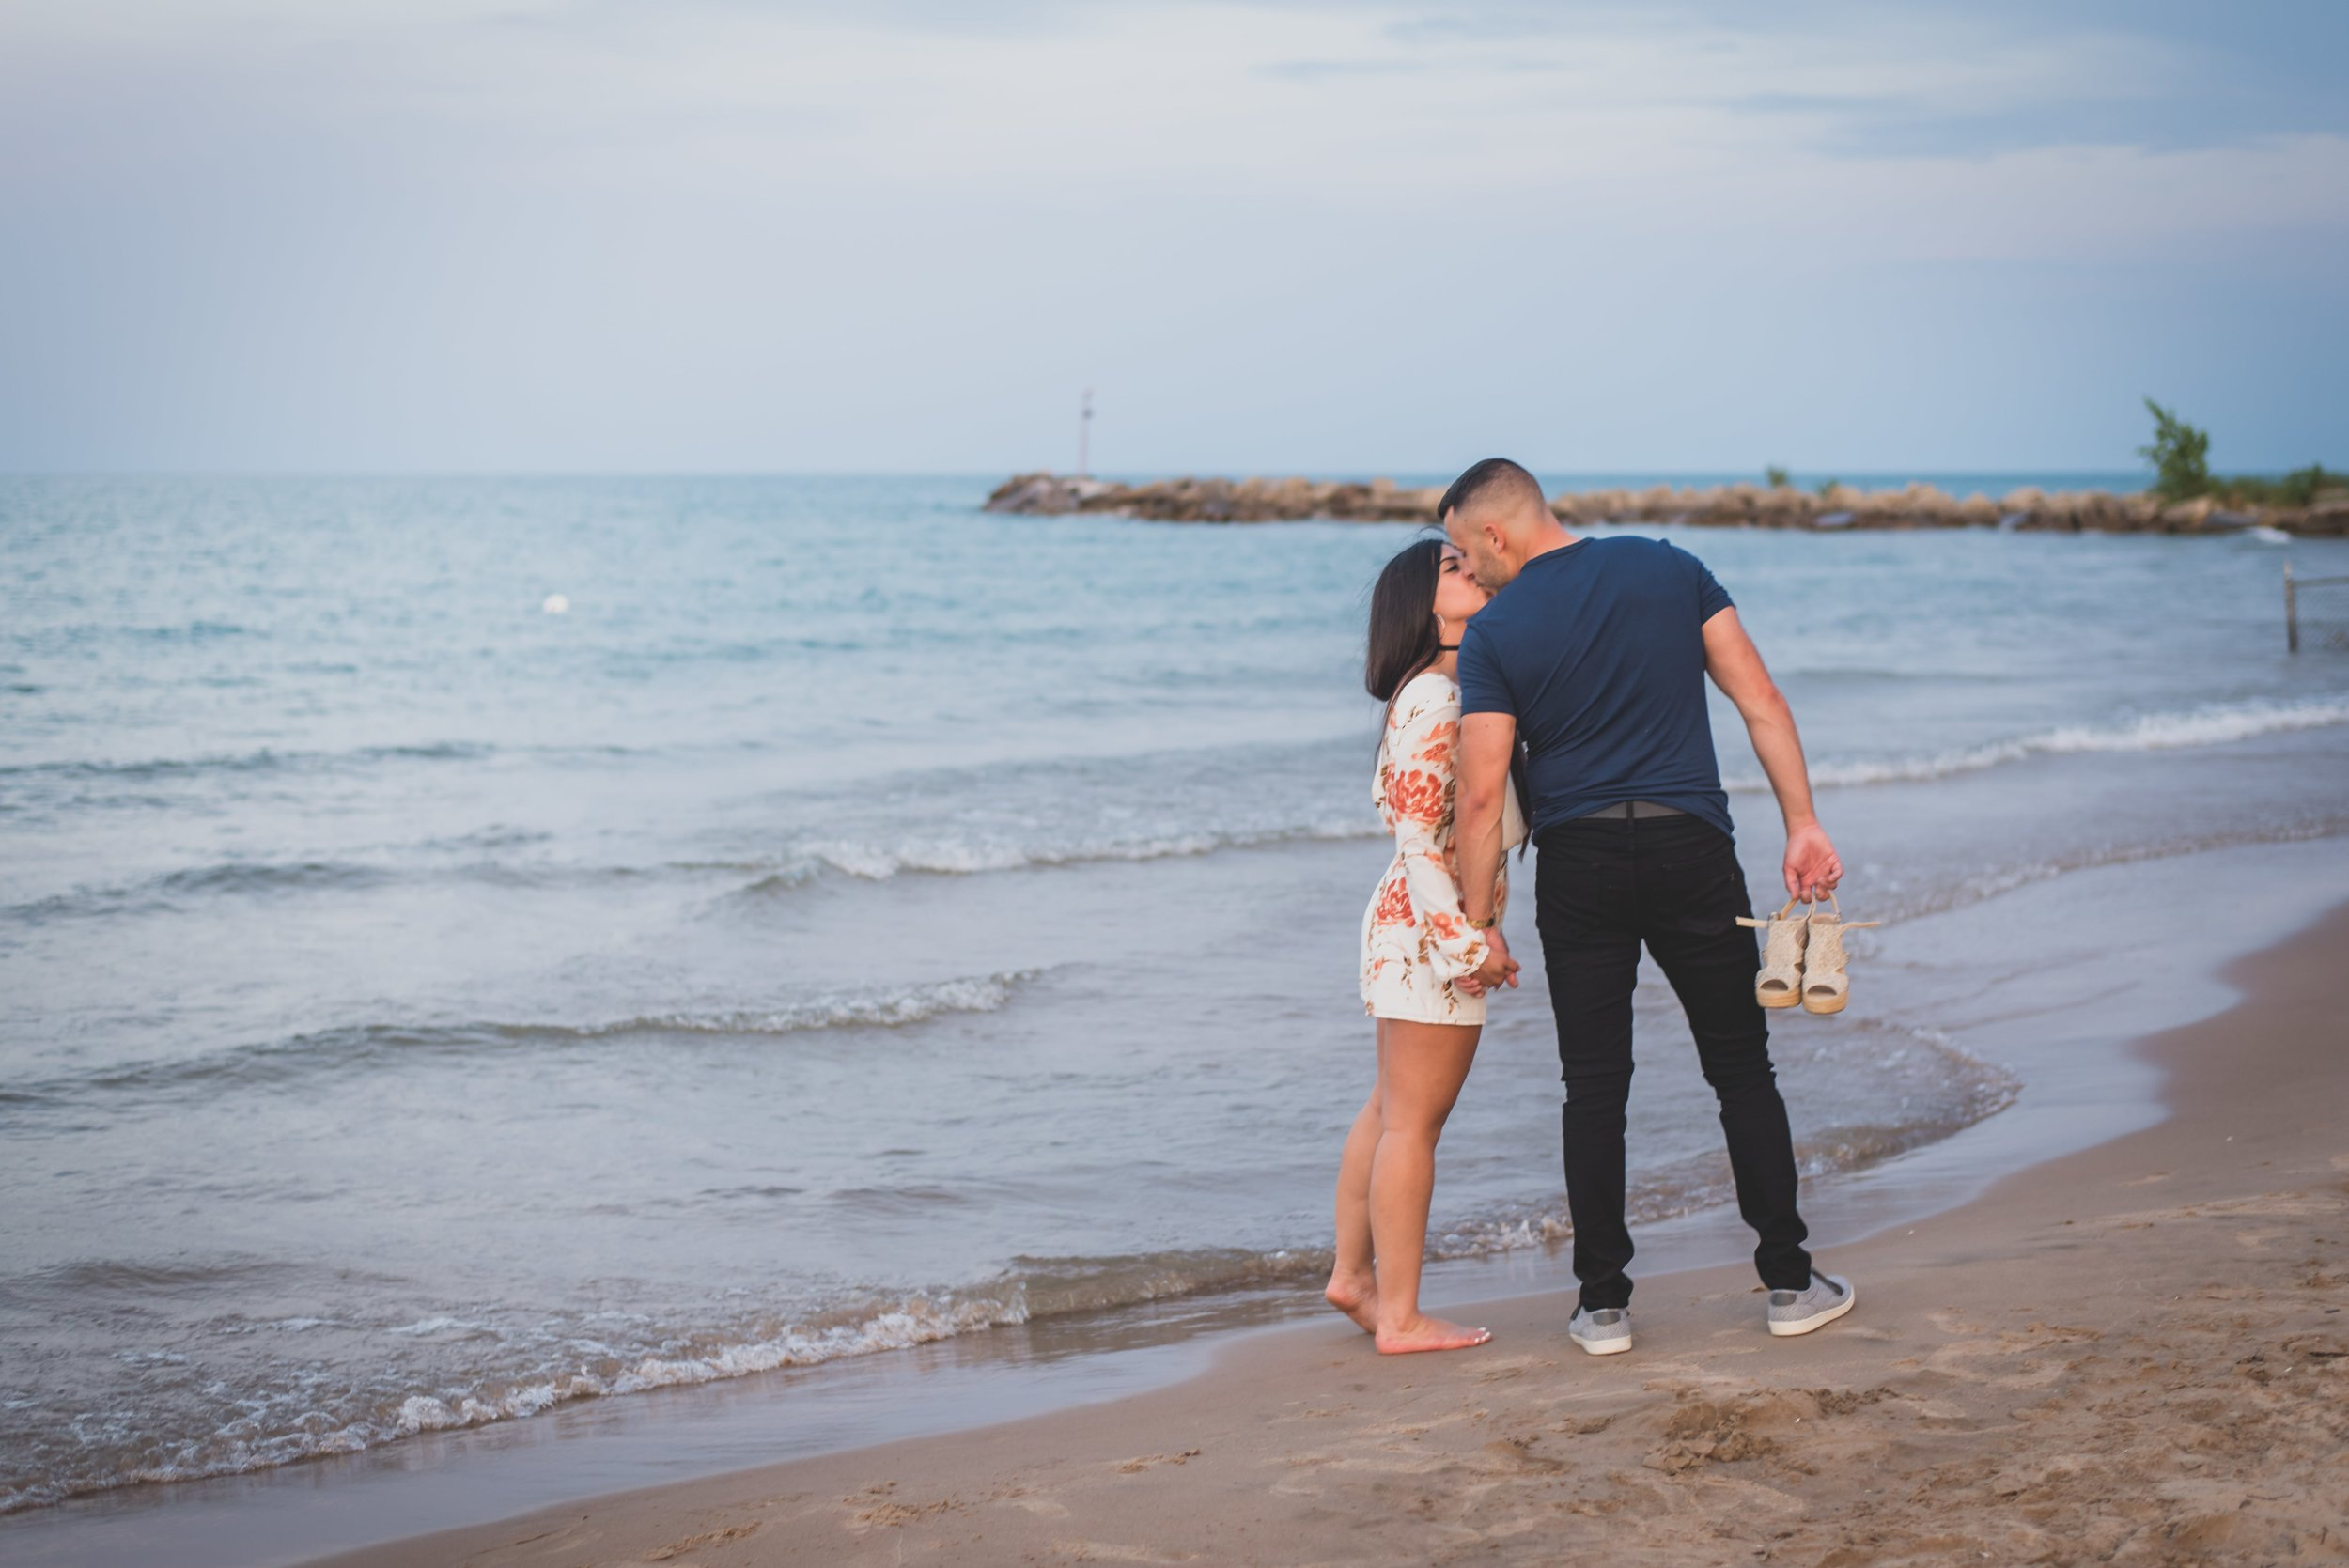 Man carries woman's shoes as they kiss on the beach.